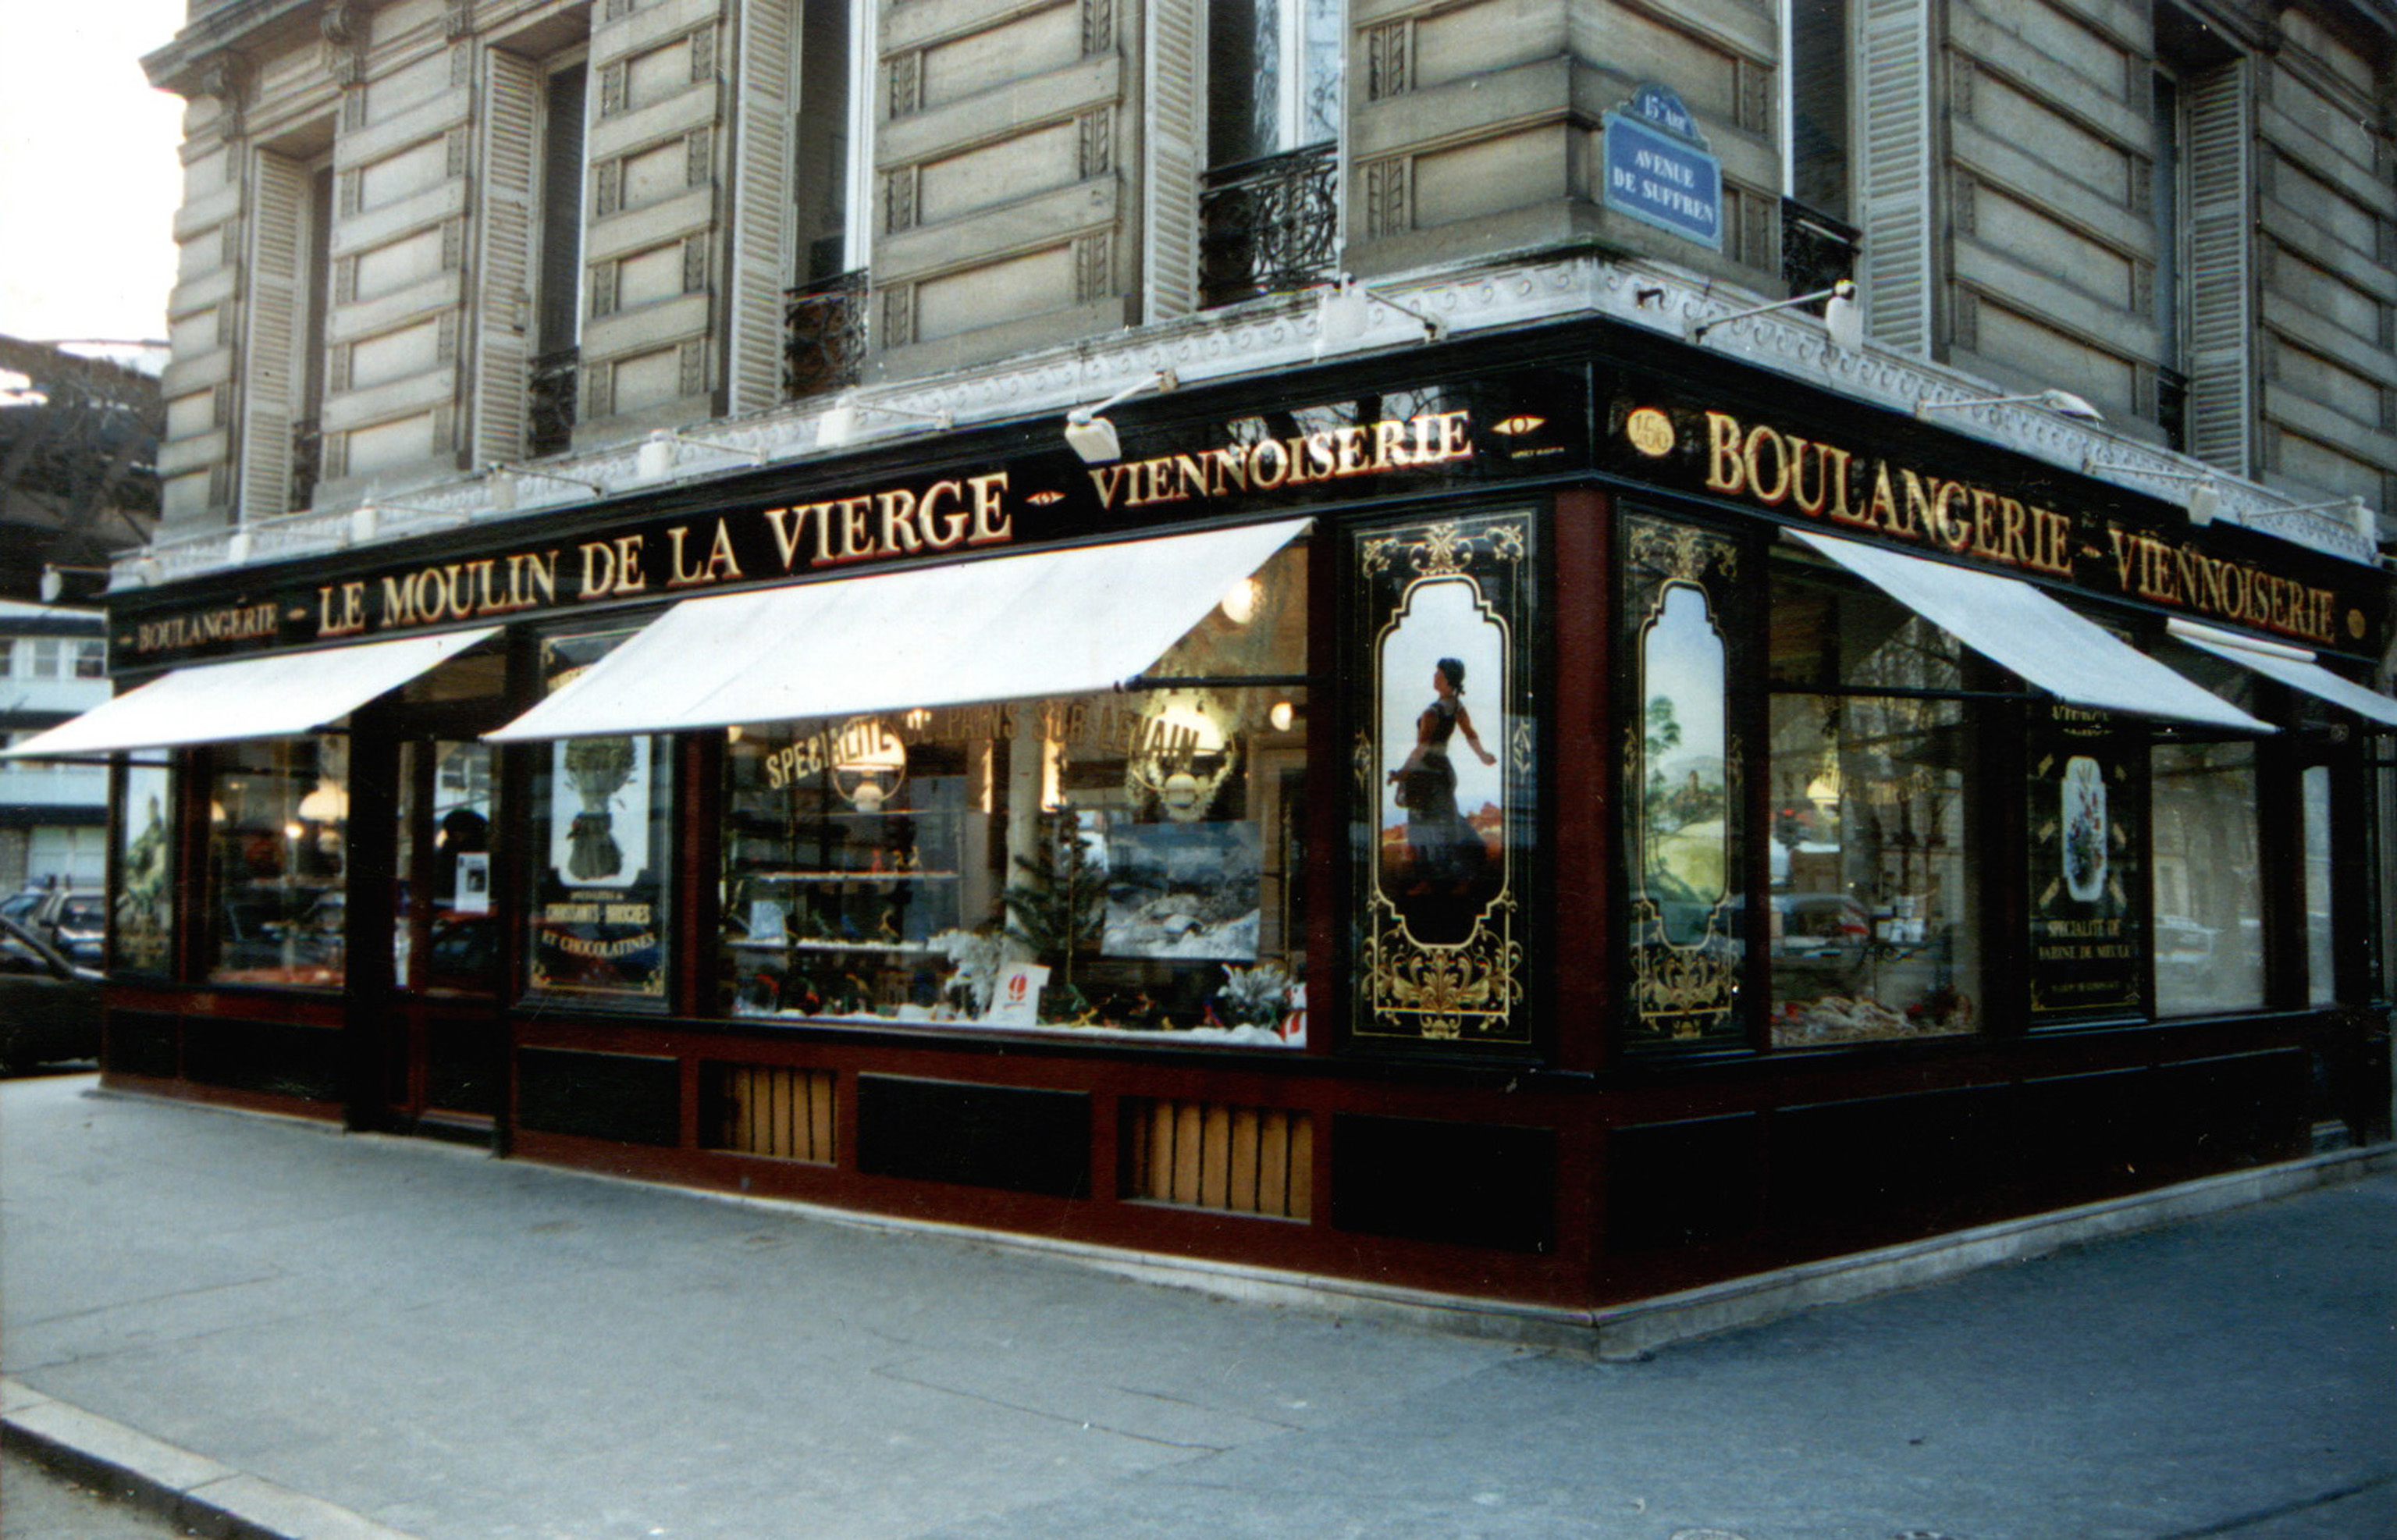 Agencement boulangerie le moulin de la vierge 166 avenue for Garage suffren paris 15